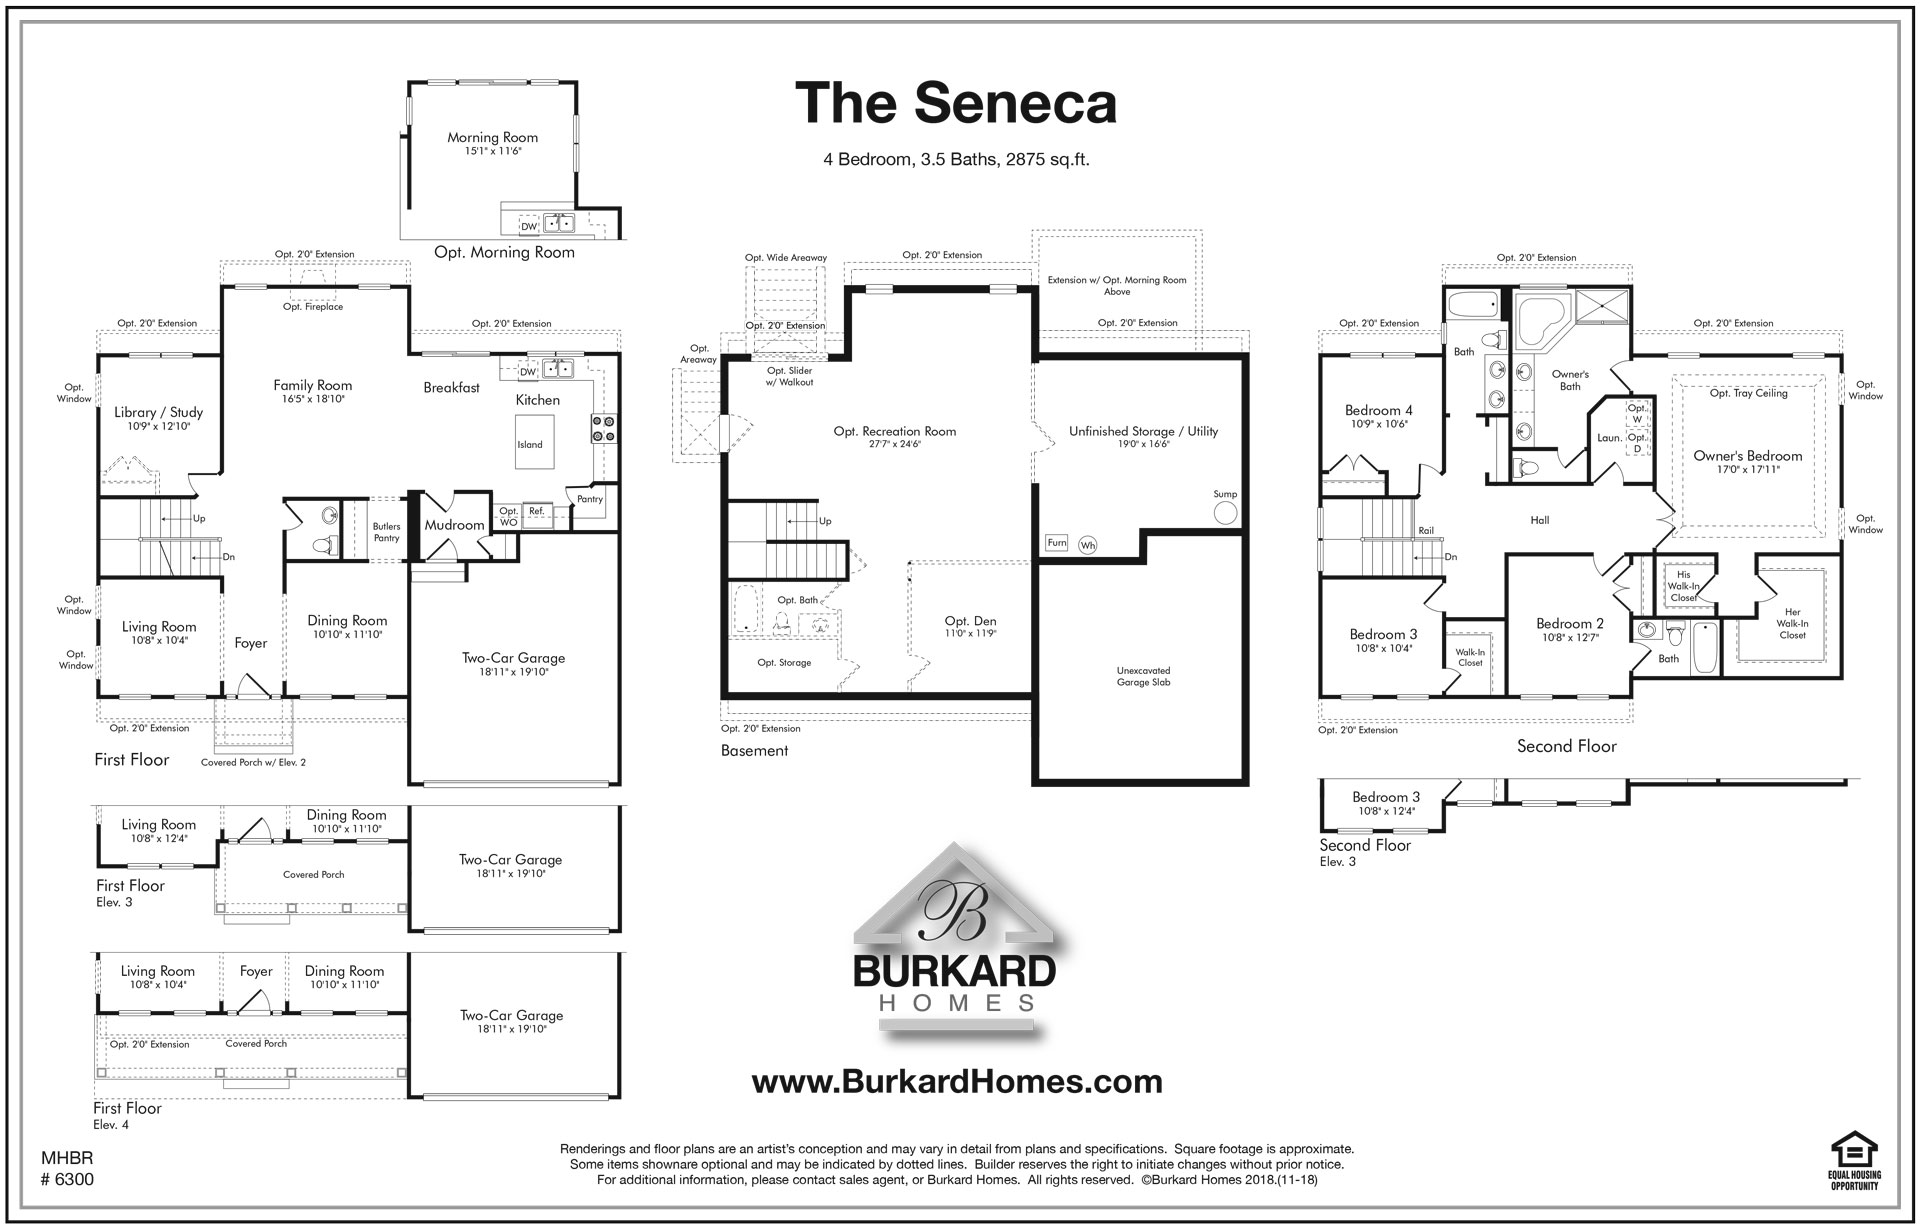 Burkard Homes Seneca I Floor Plan